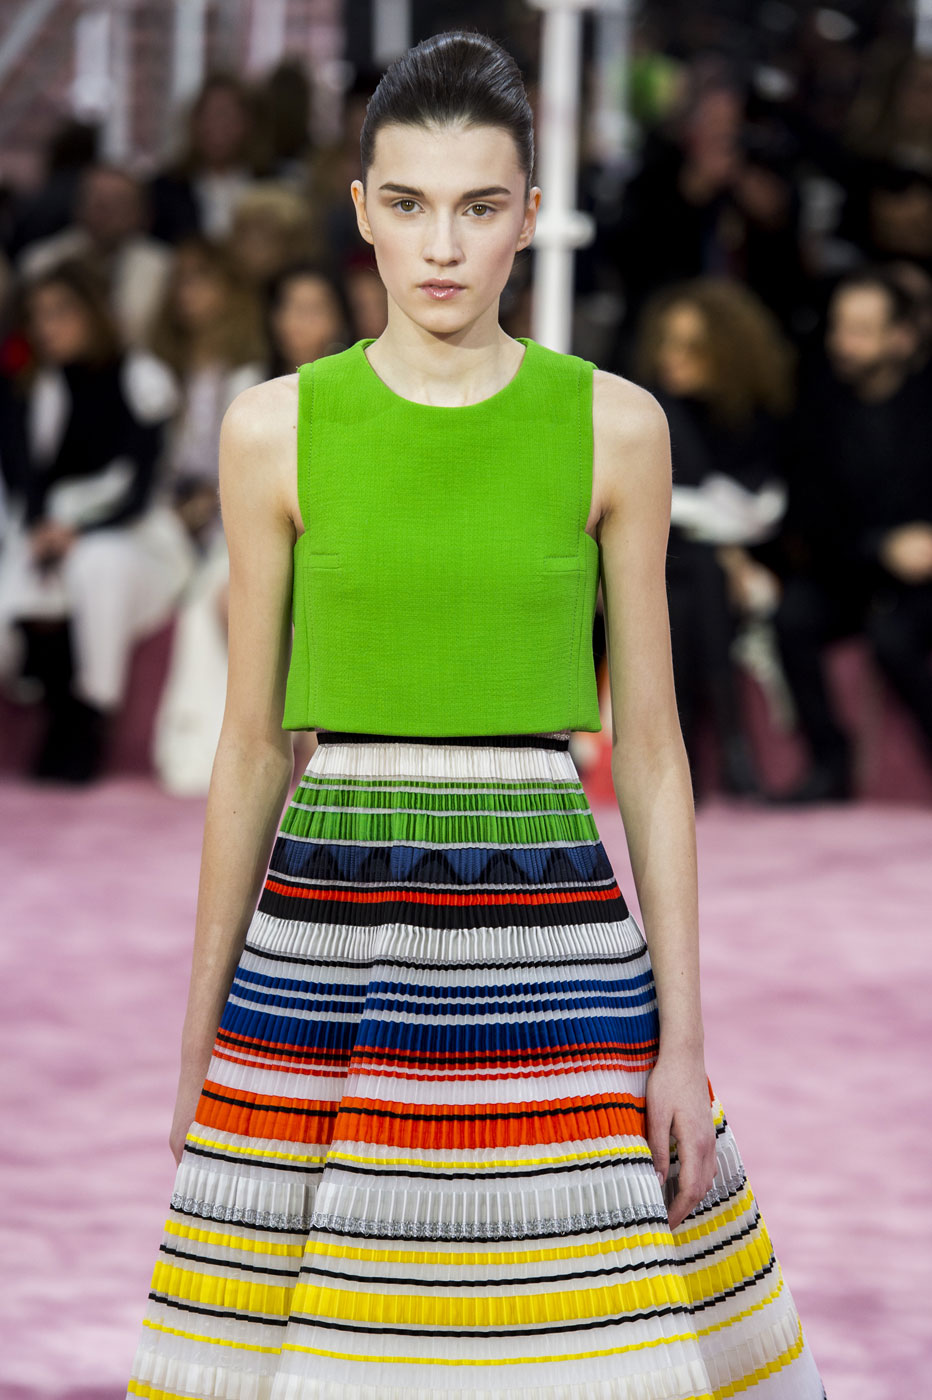 Christian-Dior-fashion-runway-show-haute-couture-paris-spring-summer-2015-the-impression-093